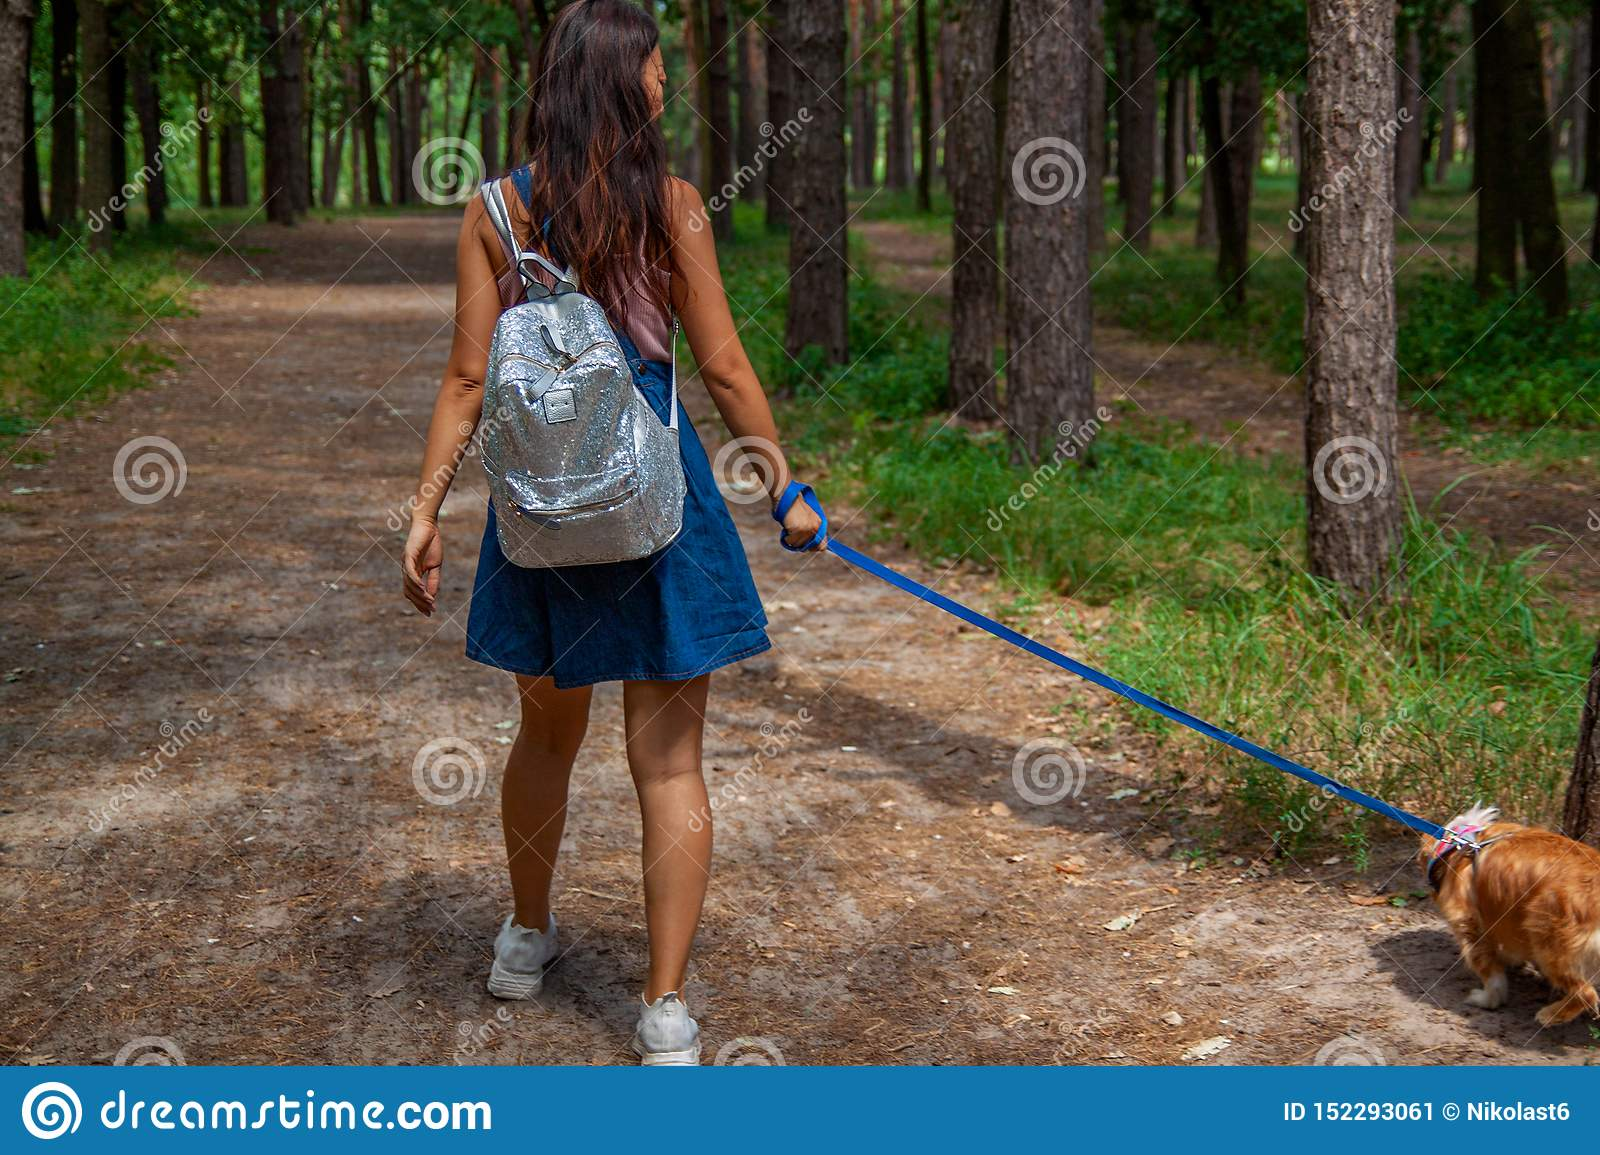 Girl on bicycle with dog walking in a park with turf grass background outdoor.